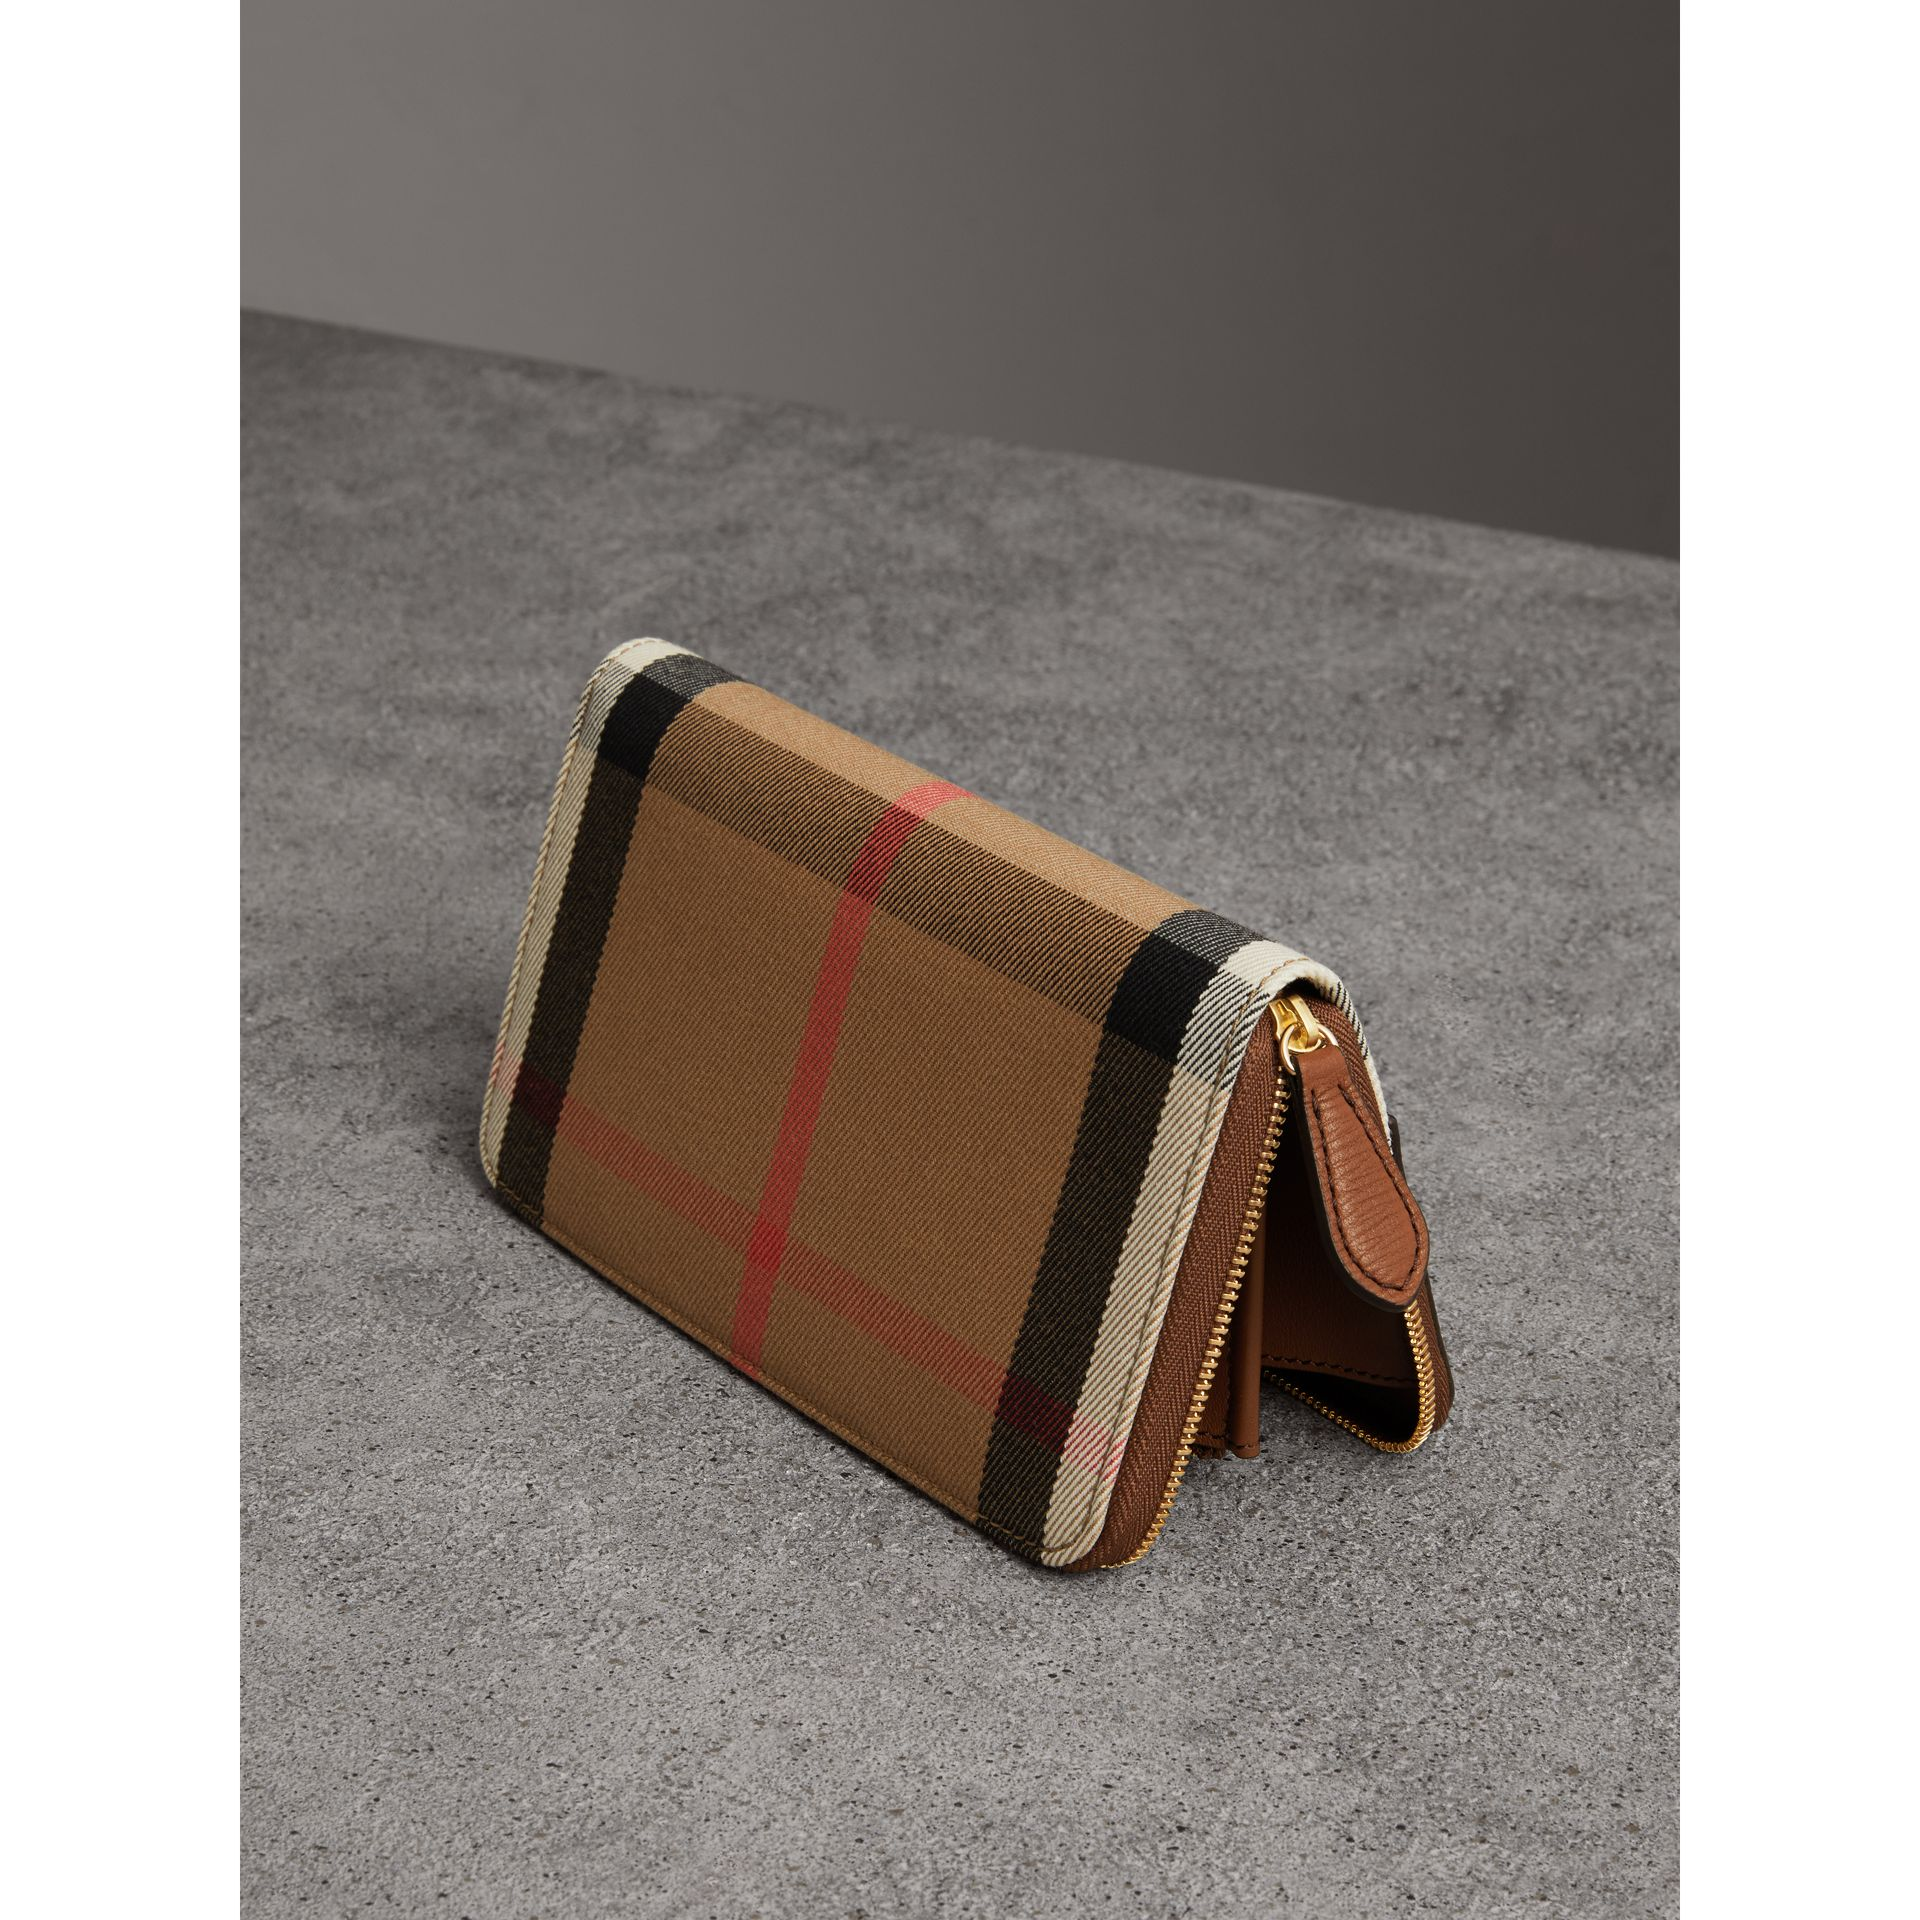 House Check and Leather Ziparound Wallet in Brown Ochre - Women | Burberry - gallery image 2